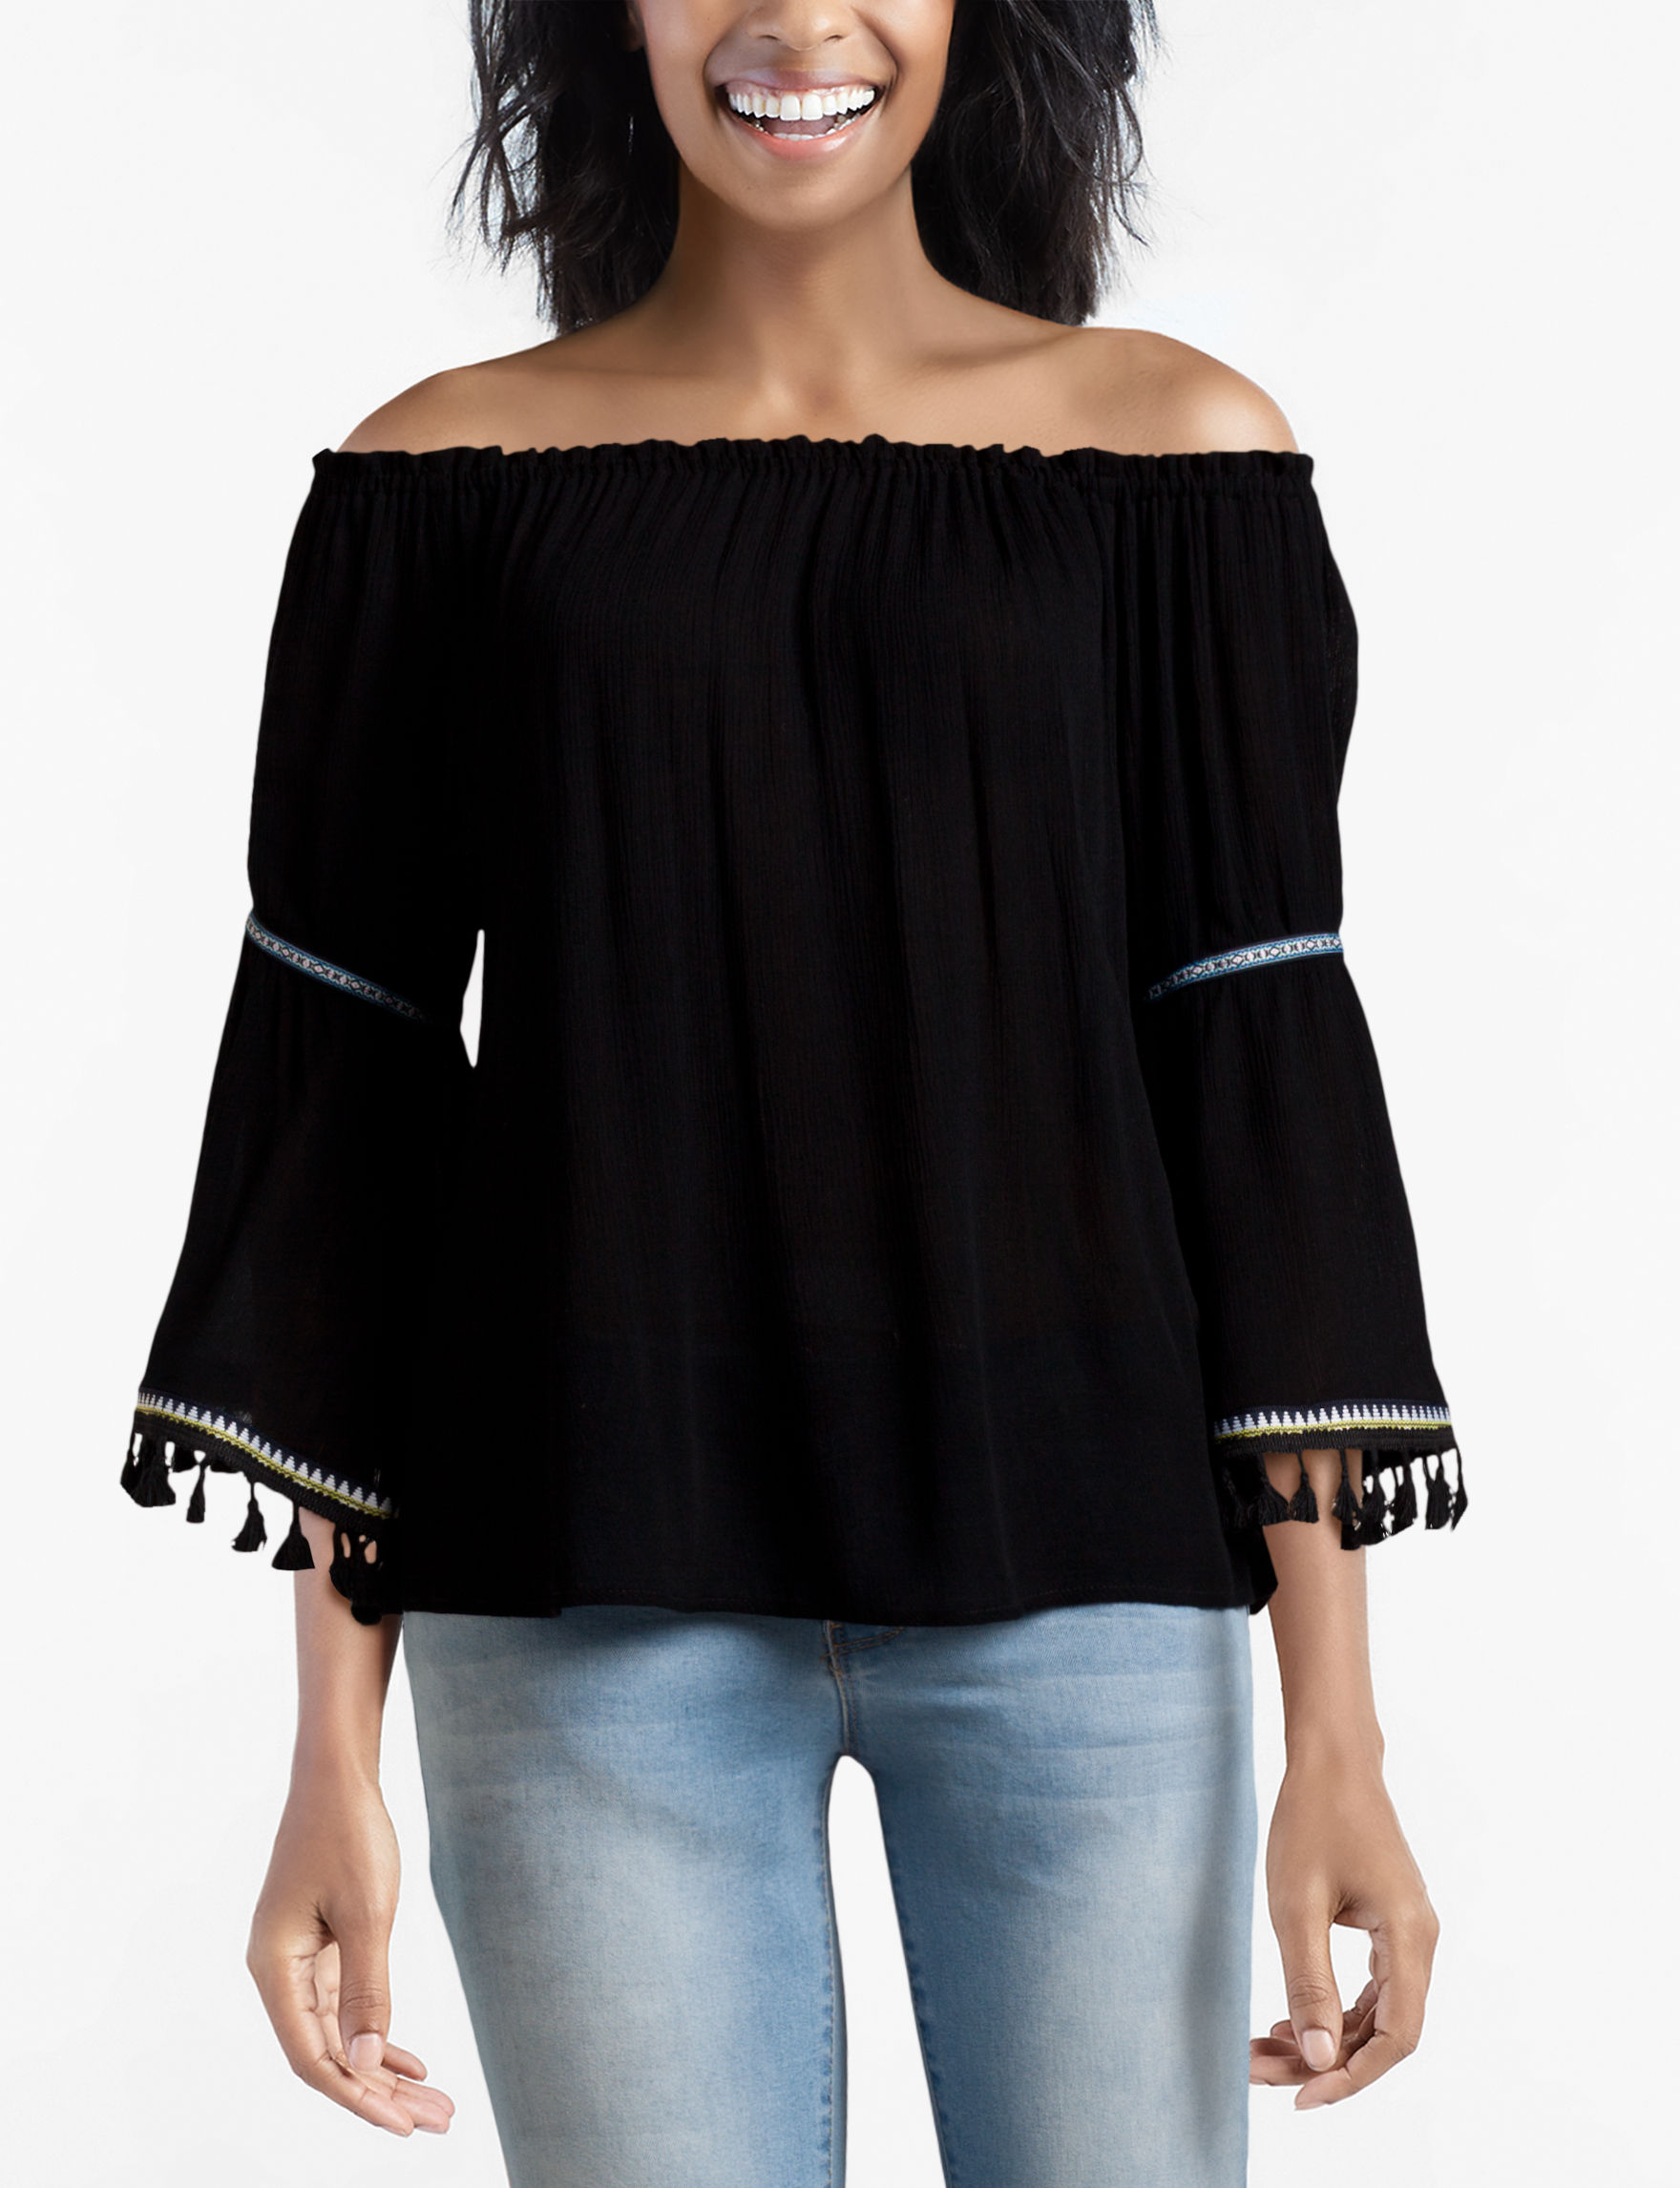 UPC 845809006736 product image for Signature Studio Tassel Trim Top - Black - L - Signature Studio | upcitemdb.com